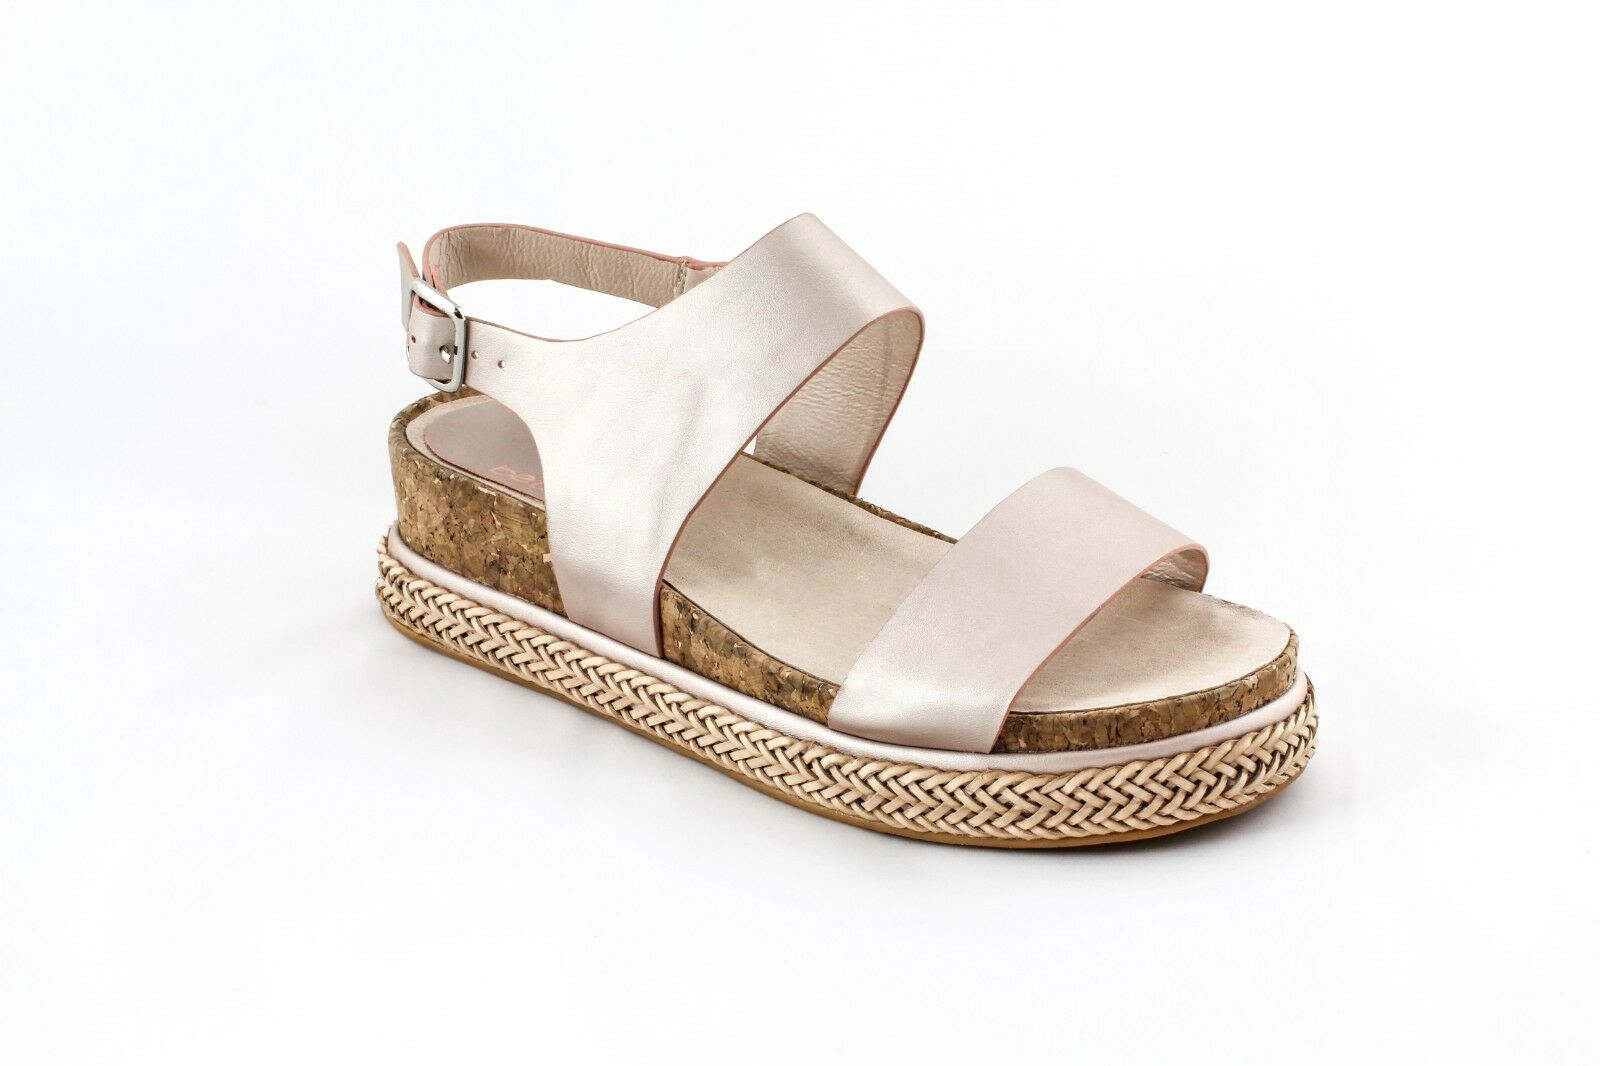 BNWL Betsy Metallic pink gold Open Toe Sandal with Adjustable Ankle Strap